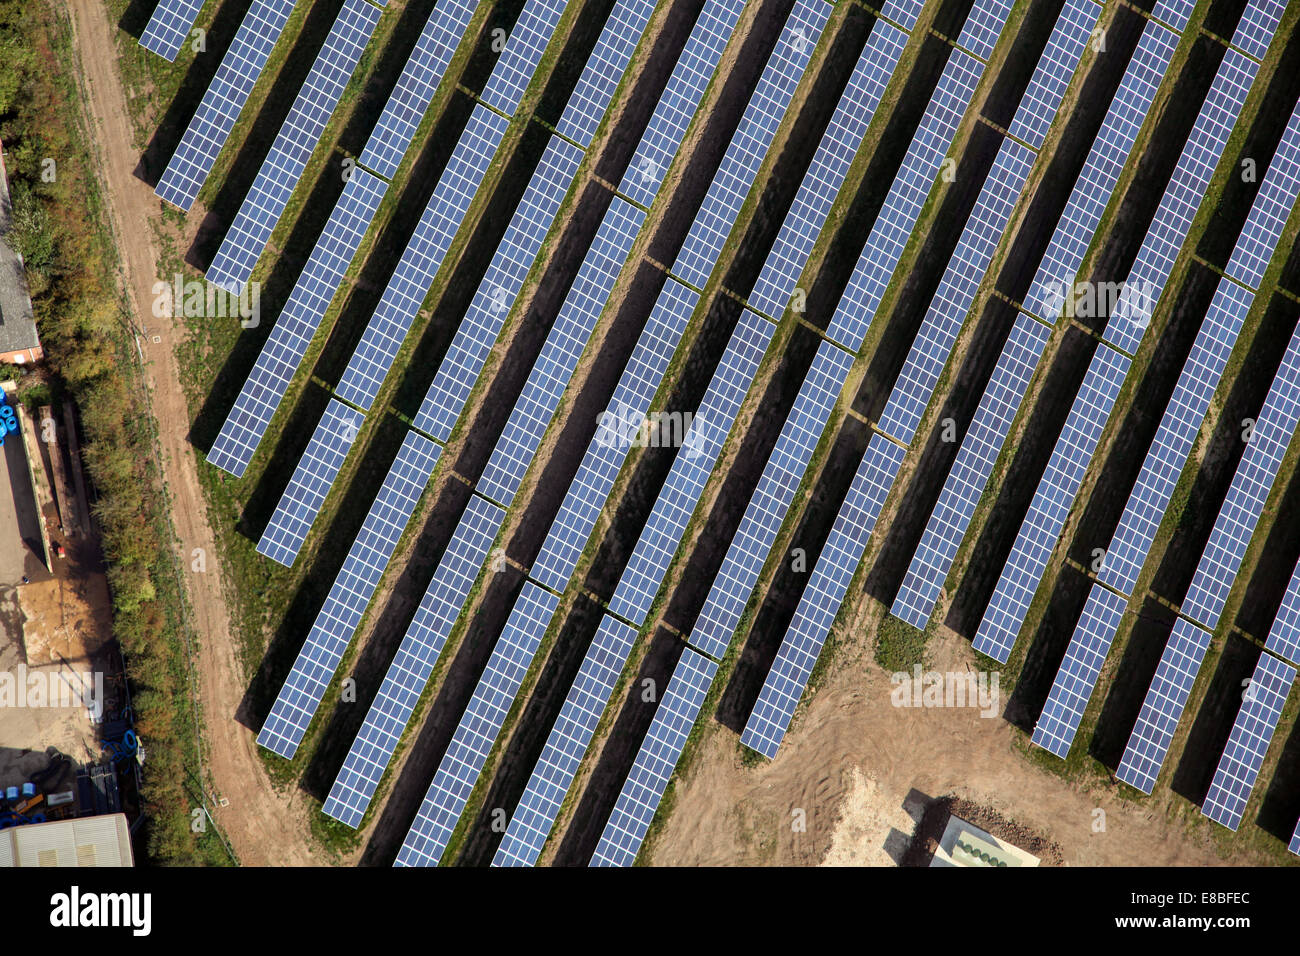 aerial view of solar panels on a solar farm in Lincolnshire - Stock Image